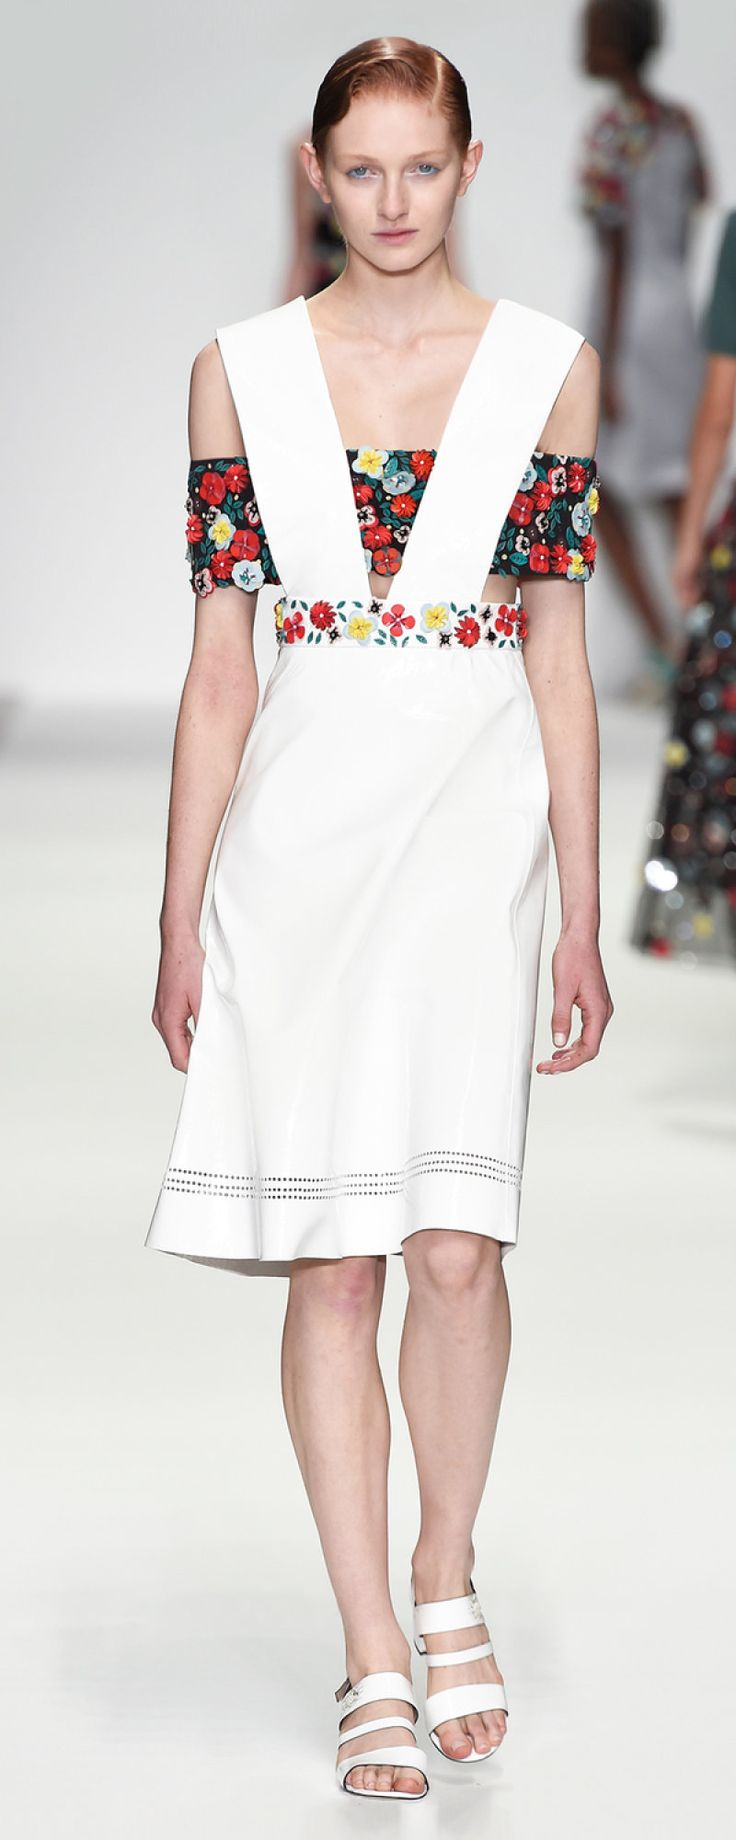 Holly Fulton SS 2015 This collection references American folk life. It uses 3 dimensional floral arrangements out of PVC. The create an intriguing visual against the matte cool wools. Directional line is used to construct a geometric shape over the body.  http://www.hollyfulton.com/collection/ss15